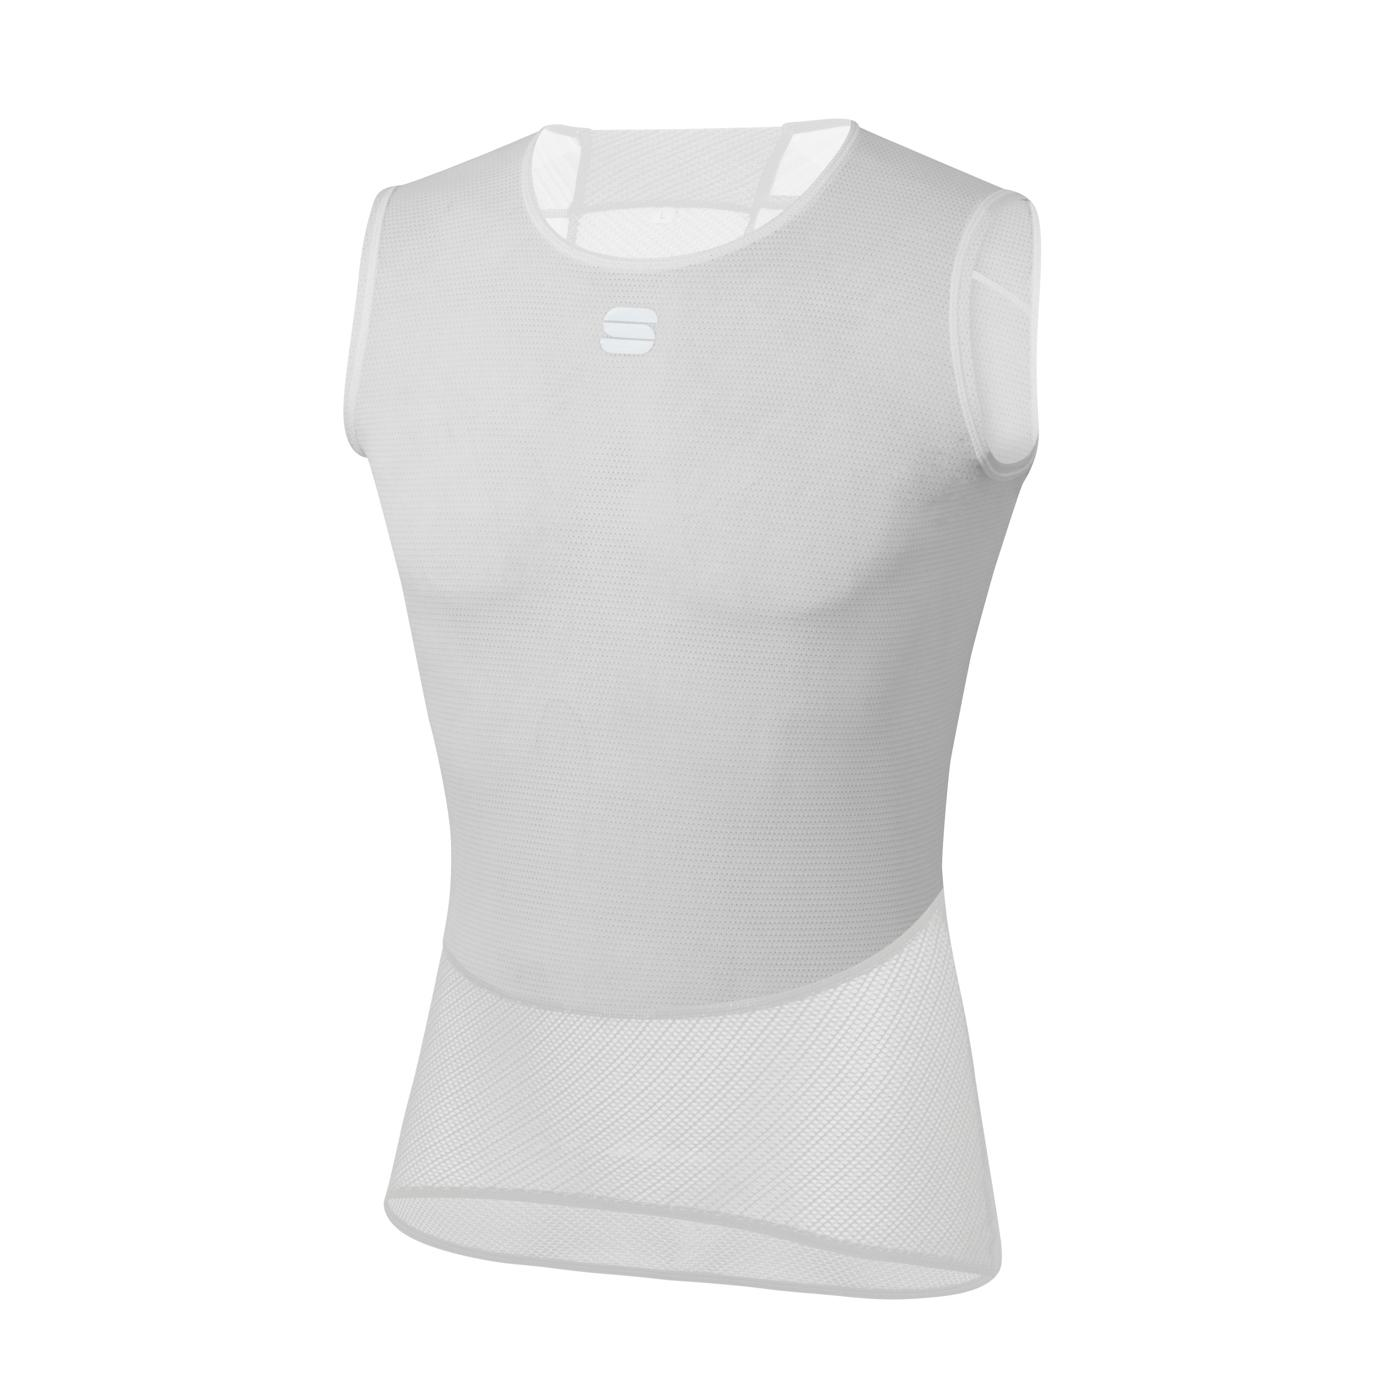 Sportful Ondershirt Mouwloos voor Heren Wit - SF Pro Baselayer Sleeveless.-White